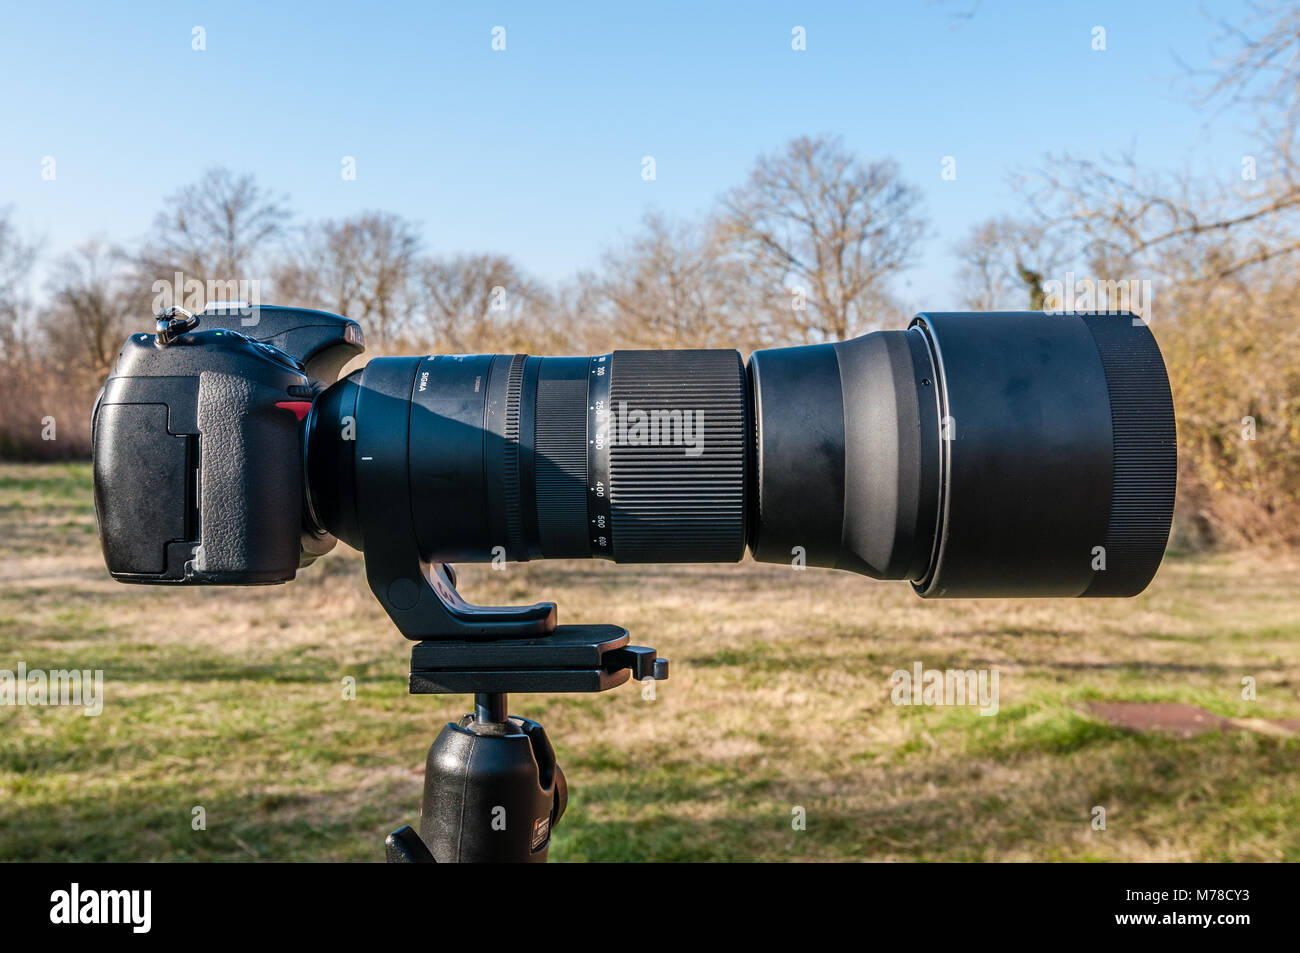 nikon d300 with sigma 150-600 mounted on a tripod Stock Photo